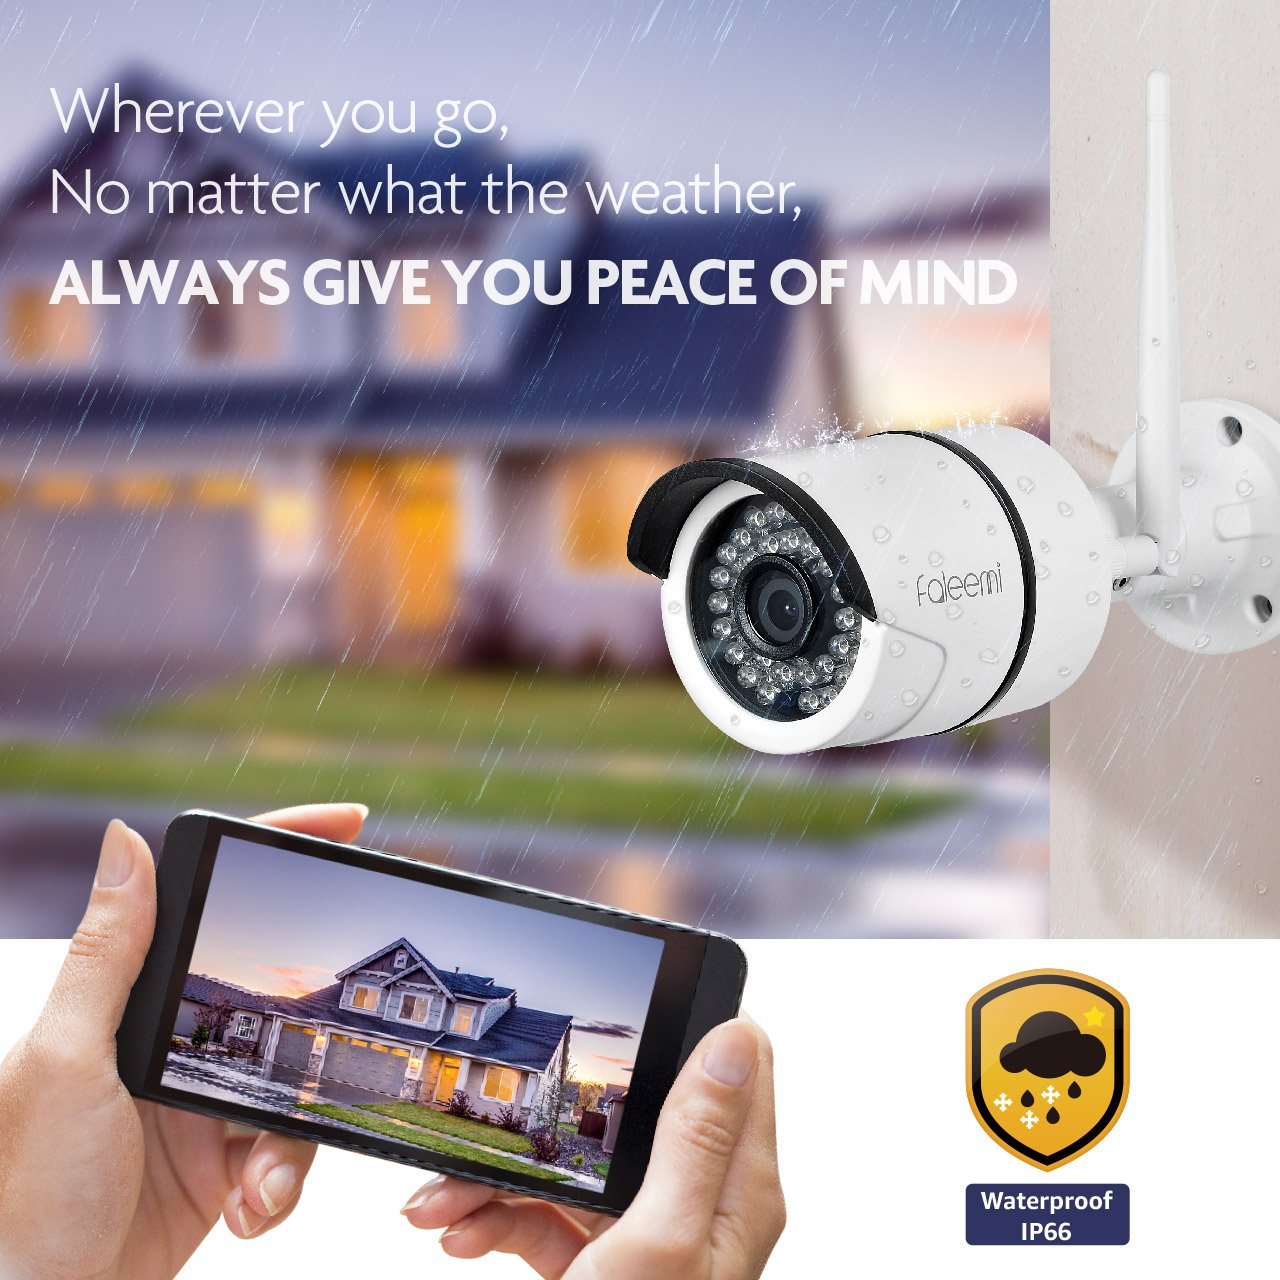 1080P Waterproof Surveillance IP Camera Faleemi Outdoor//Indoor Full HD WiFi Security Camera Night Vision FSC860 Bullet Camera for Your Smartphone with Motion Detection